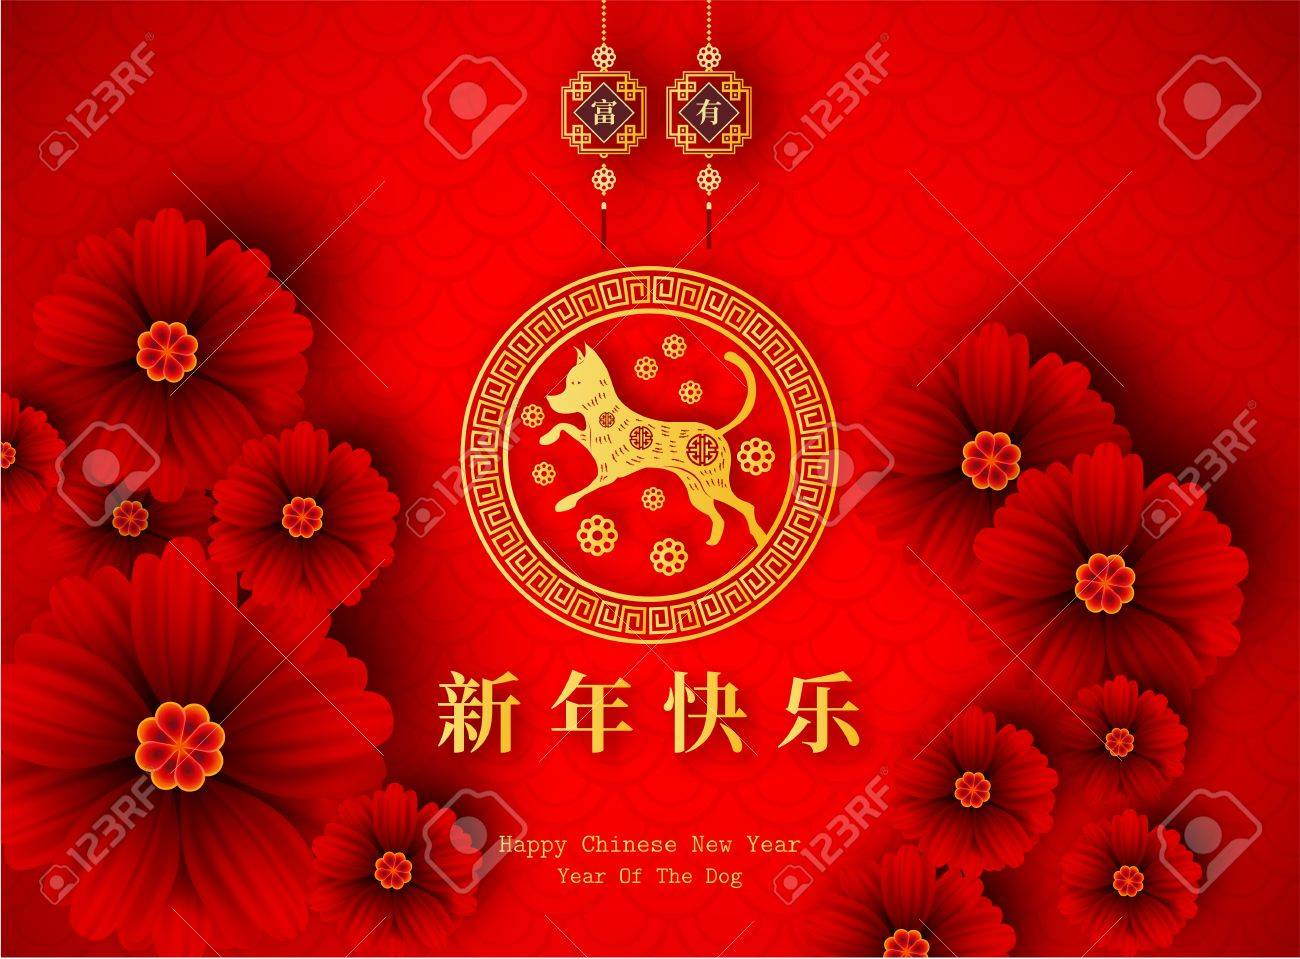 2018 chinese new year greeting card design stock vector 88901052